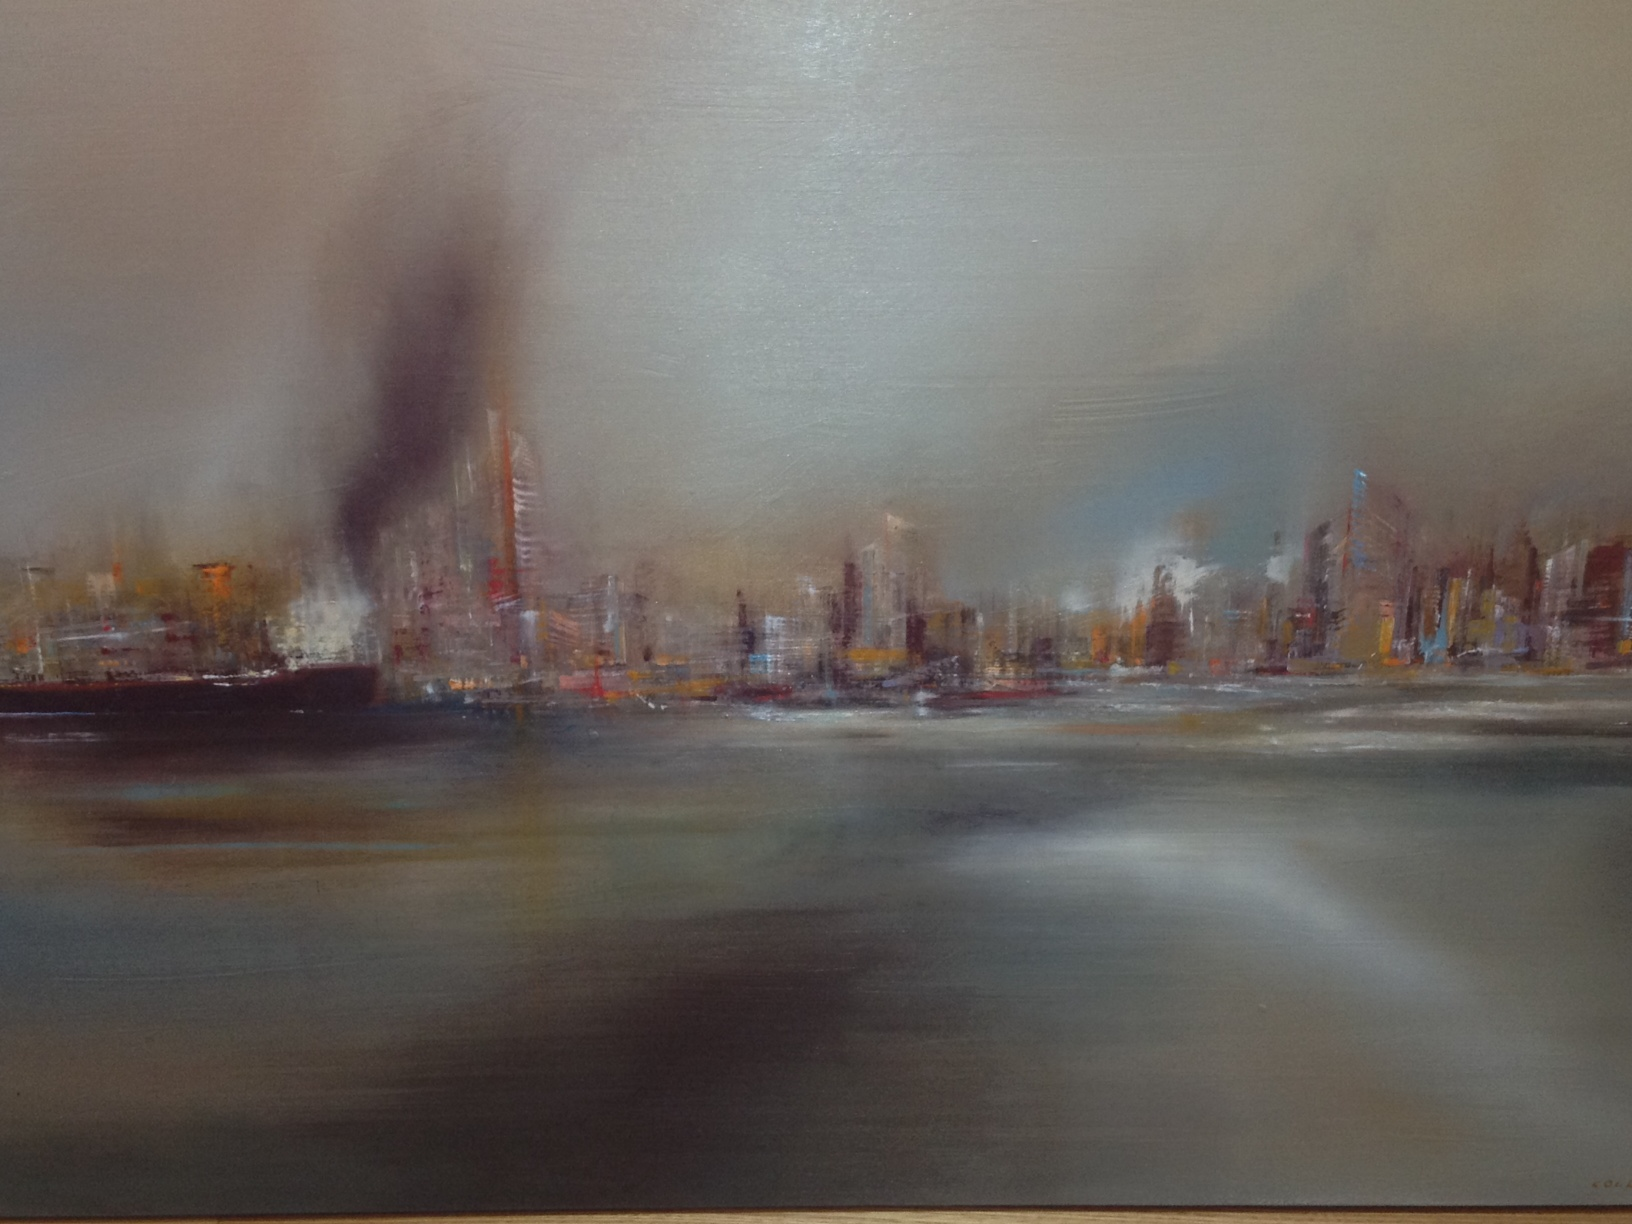 Shipping Metropolitan artwork by Fred Colla - art listed for sale on Artplode